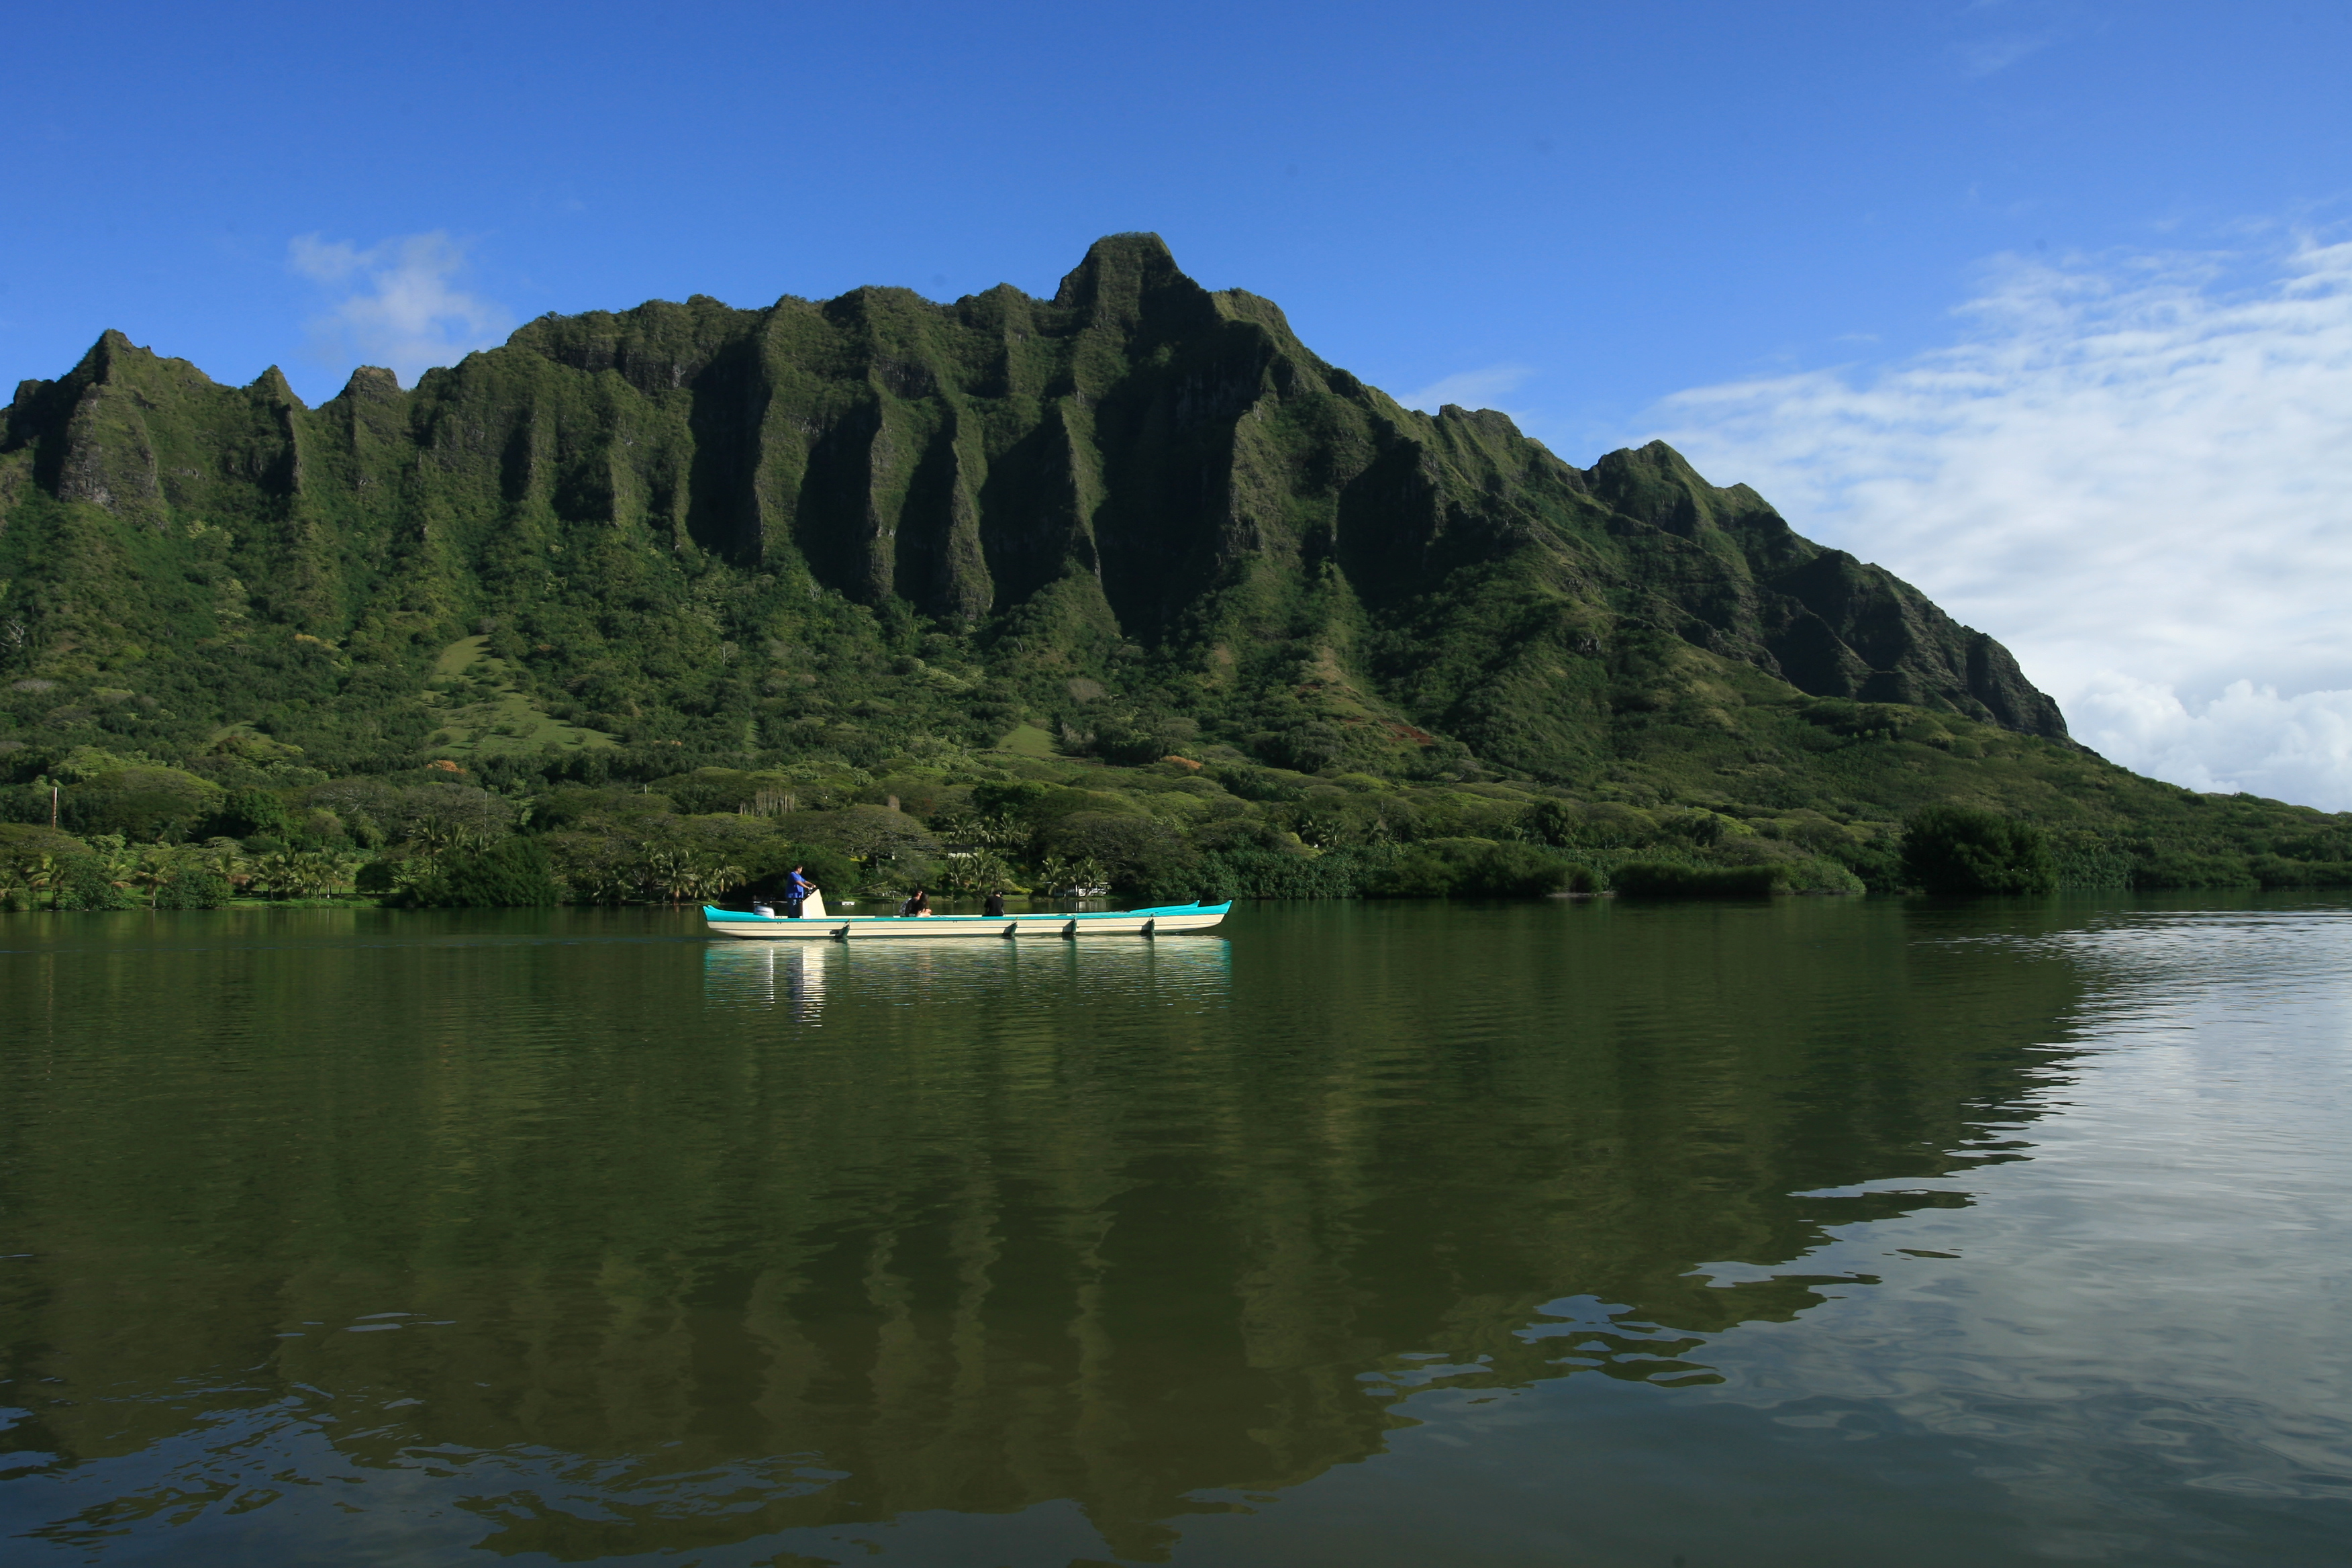 Kualoa Ranch Oahu Hawaii fishpond tour on 800-year old ancient pond